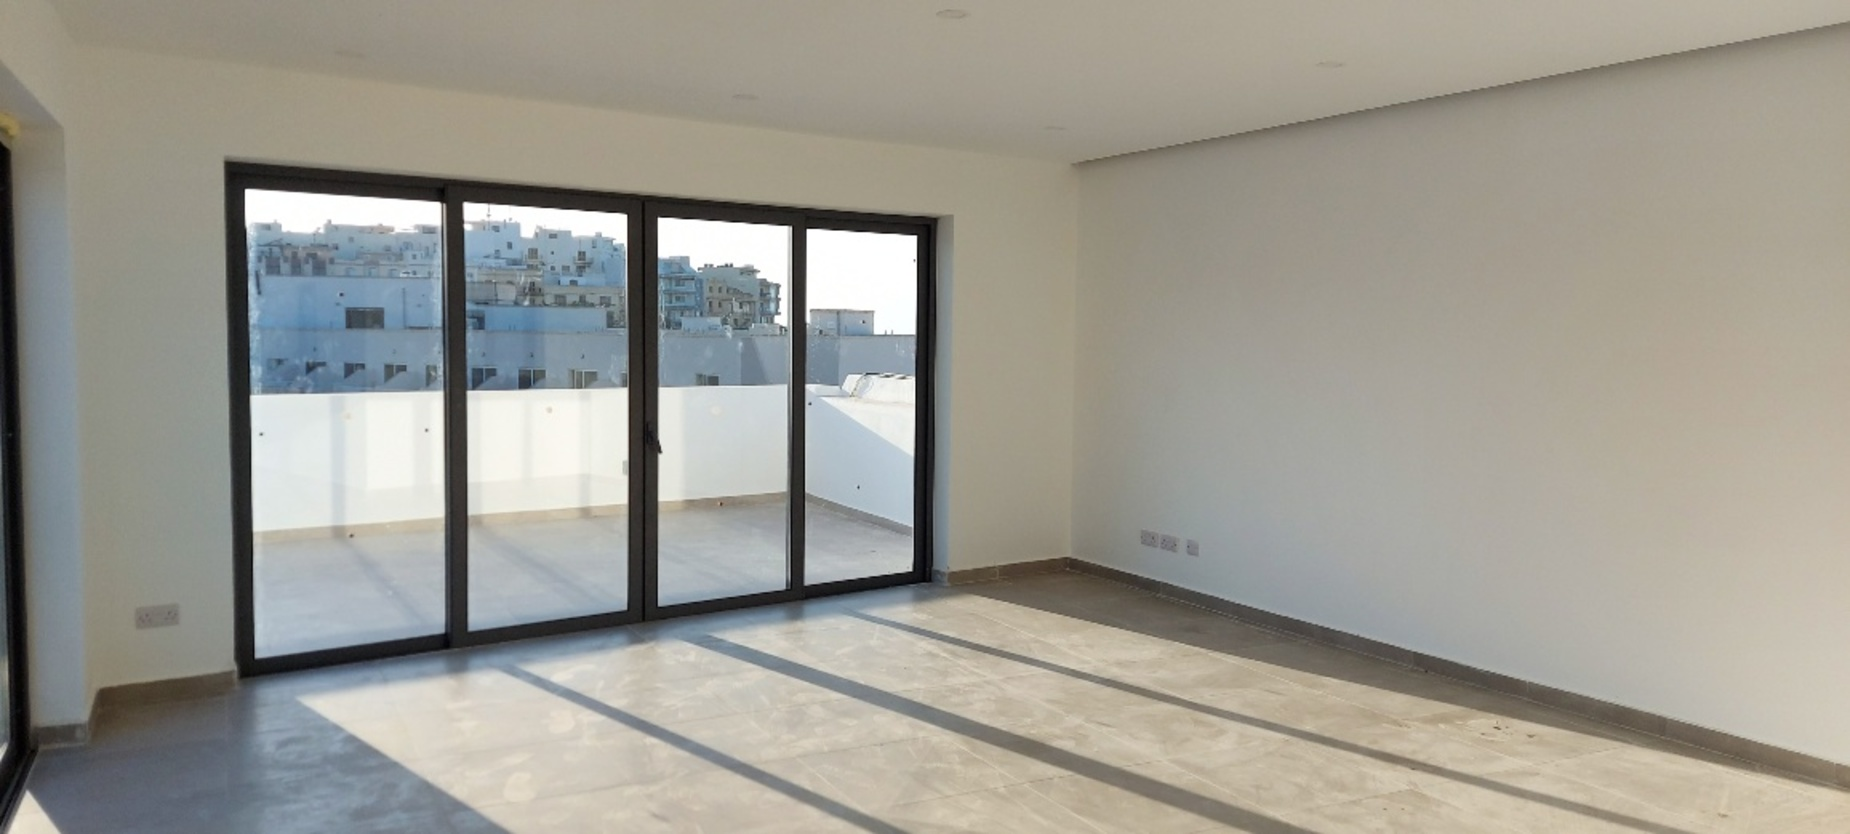 4 bed Penthouse For Sale in Mellieha, Mellieha - thumb 4